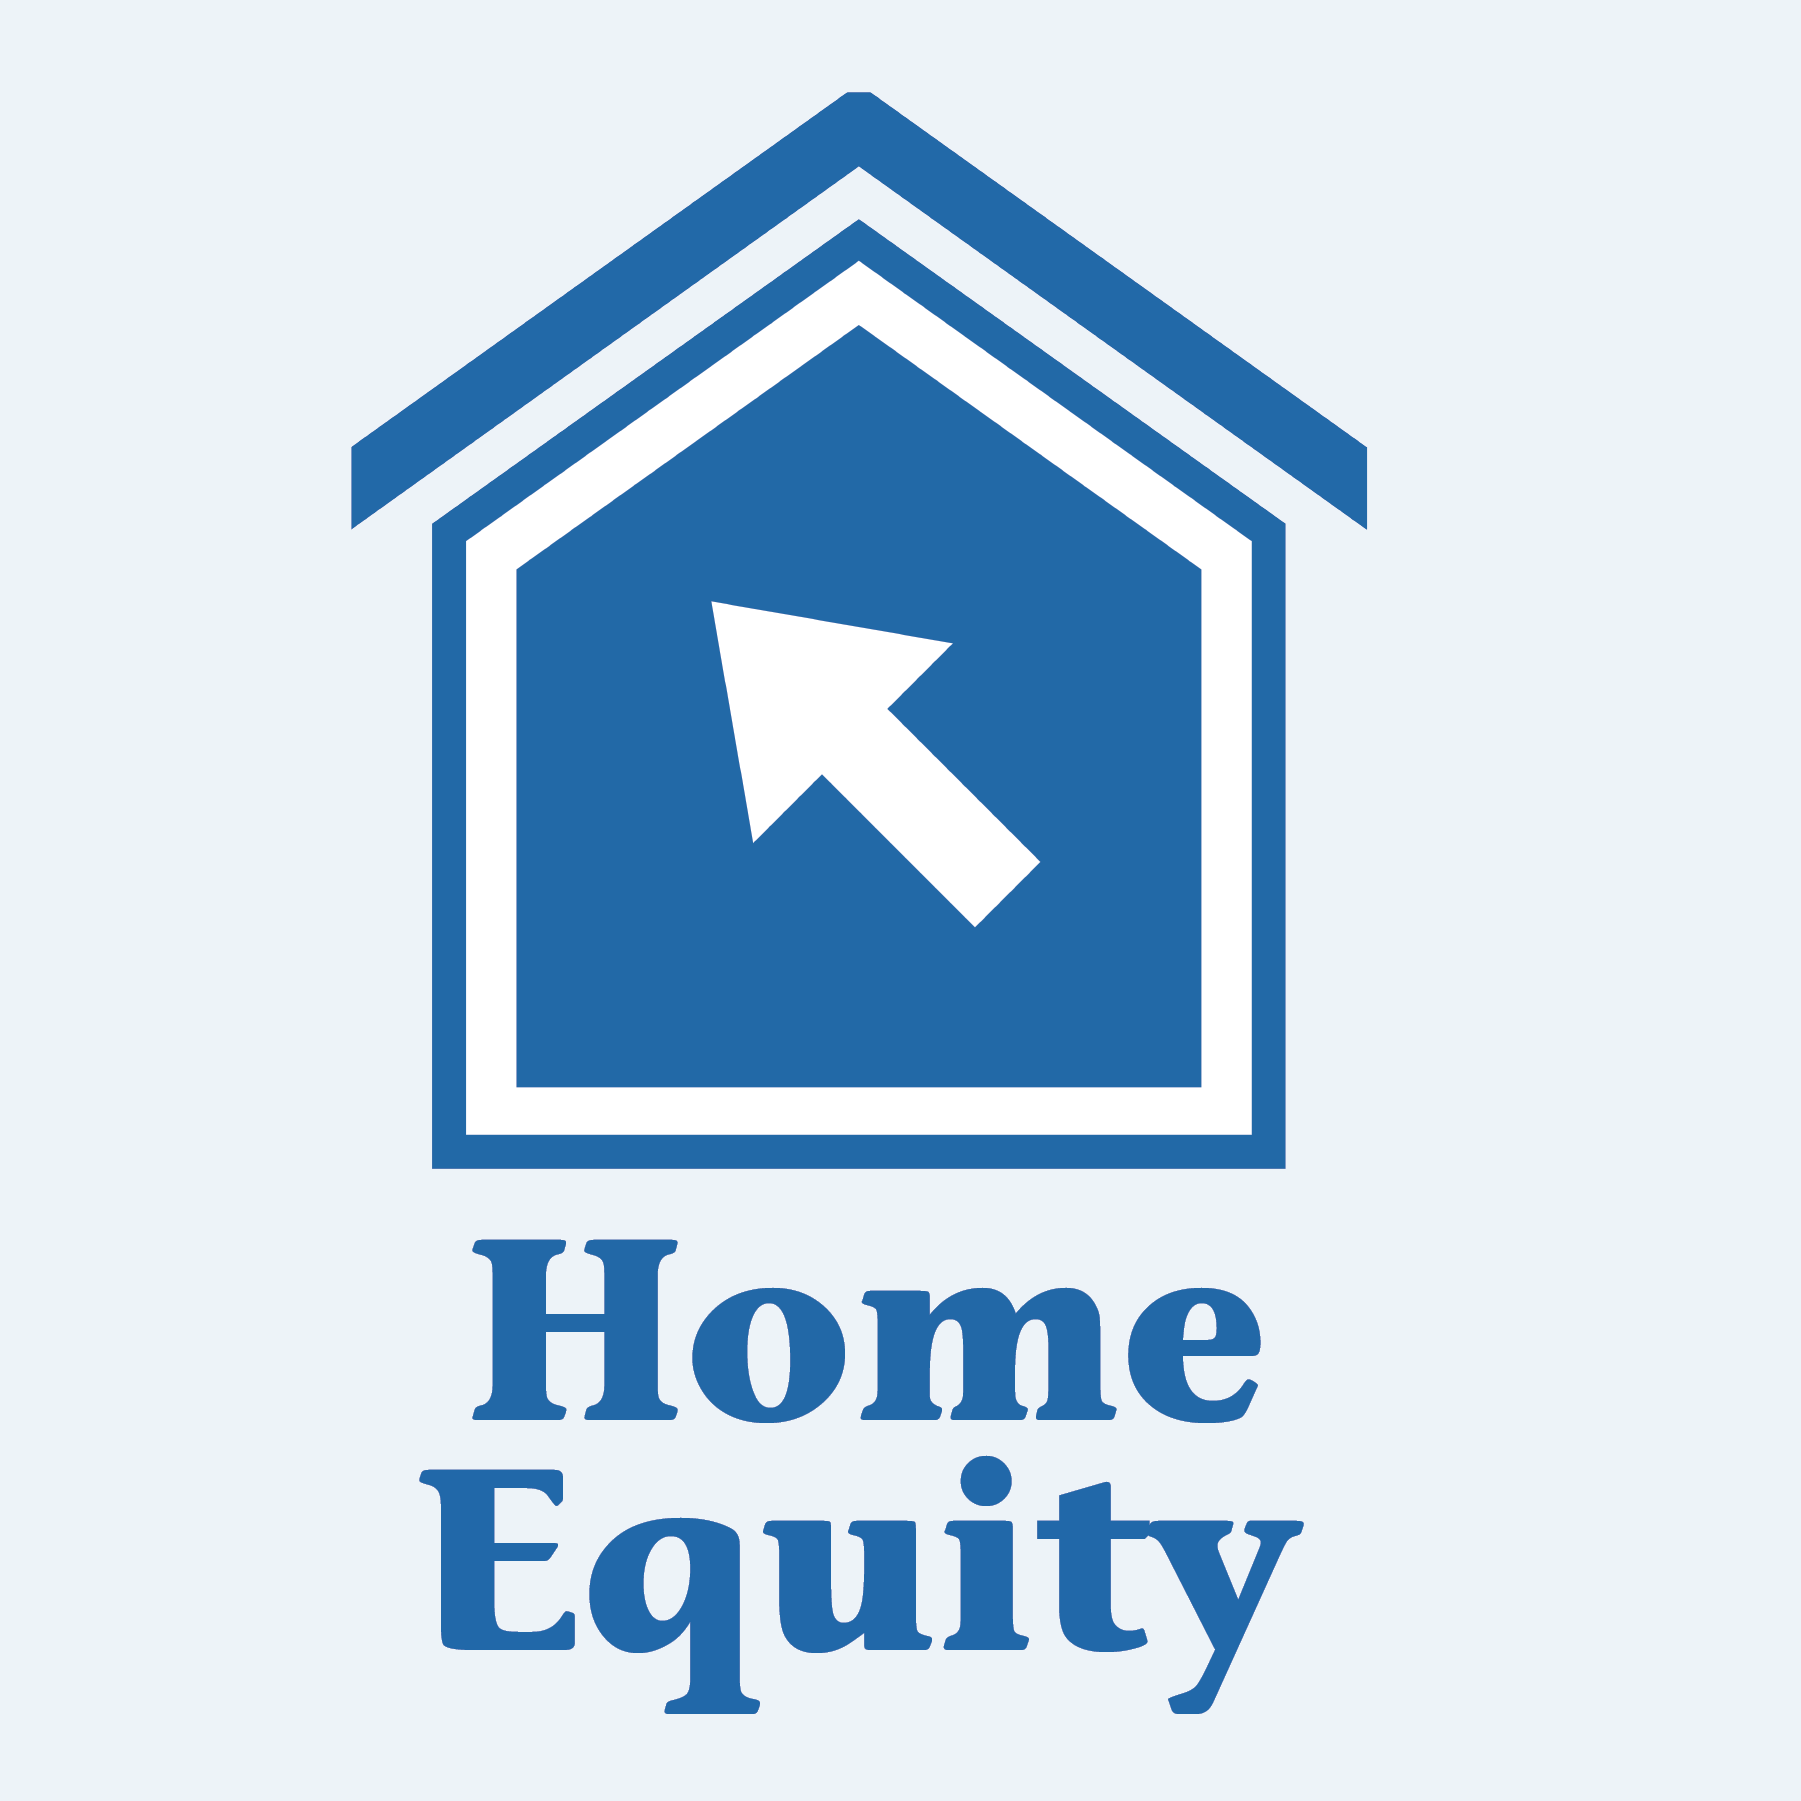 Apply for Home Equity Loan